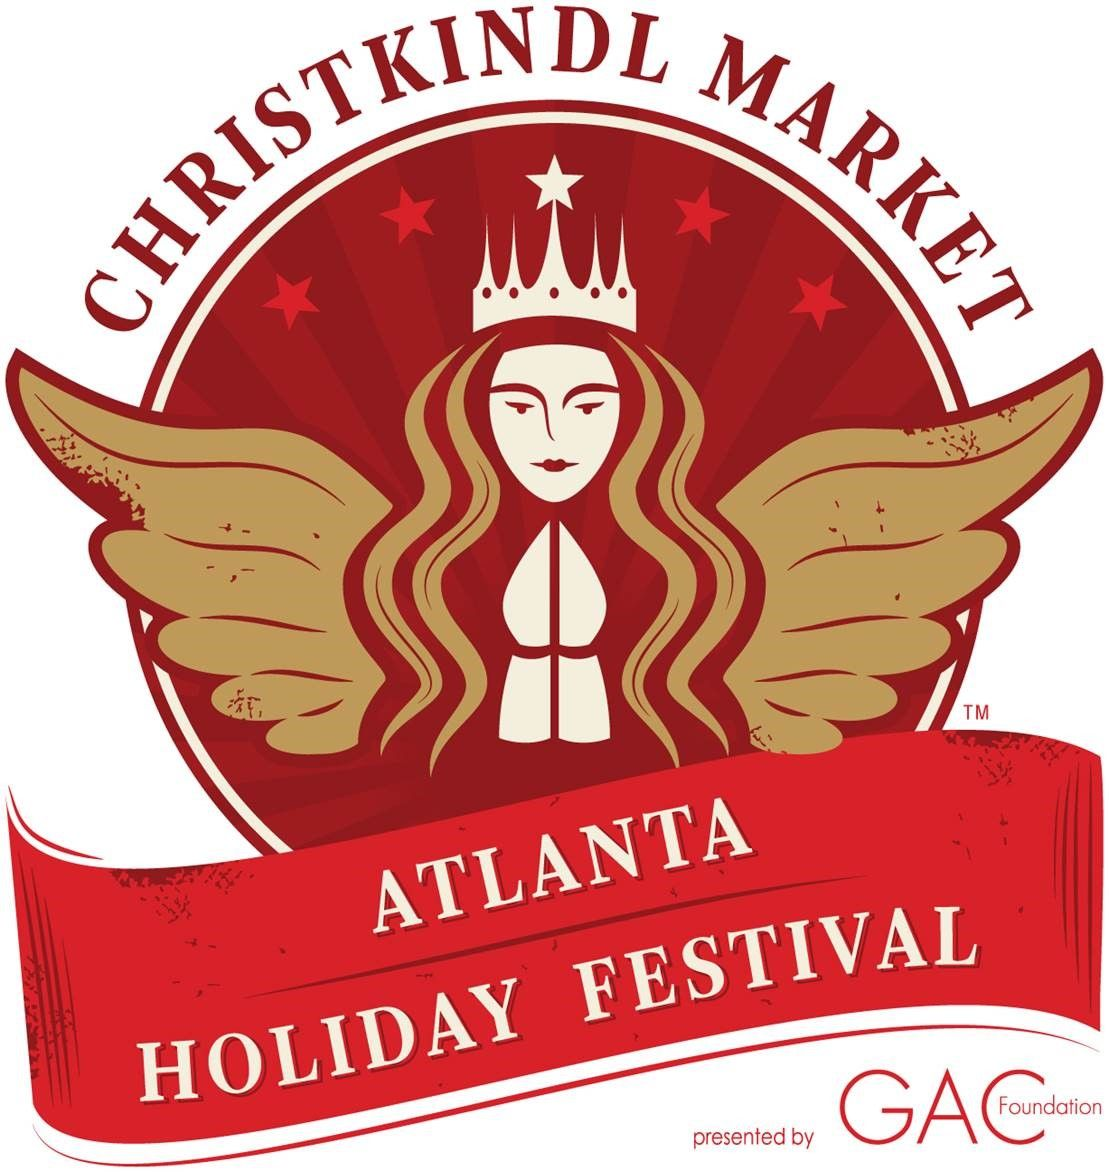 Returning To Atlantic Station The Christkindl Market Is The First And Largest German Market In The Holiday Festival German Christmas Markets Christmas Market